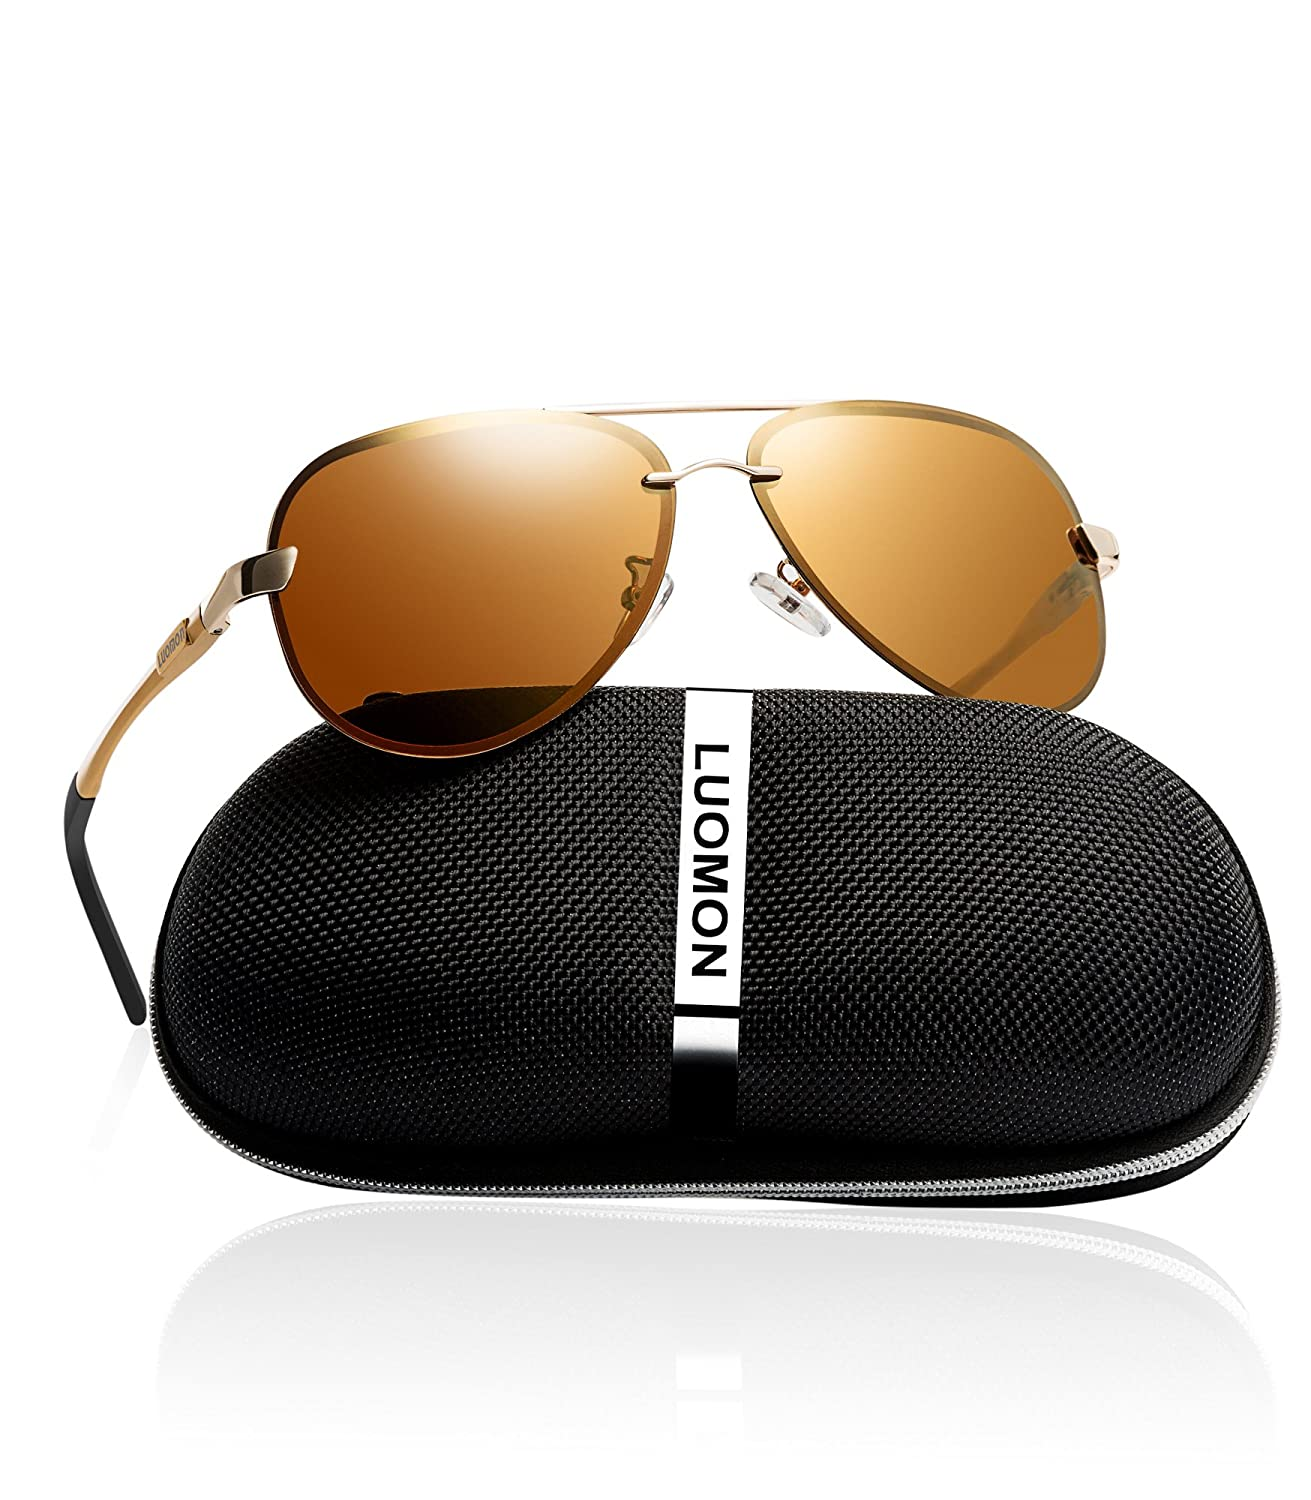 5ed00aed14 Amazon.com  LUOMON Men s Polarized Aviator Sunglasses Metal Gold  Frame Brown Lens with Al-Mg Aloy Temple LM007  Clothing